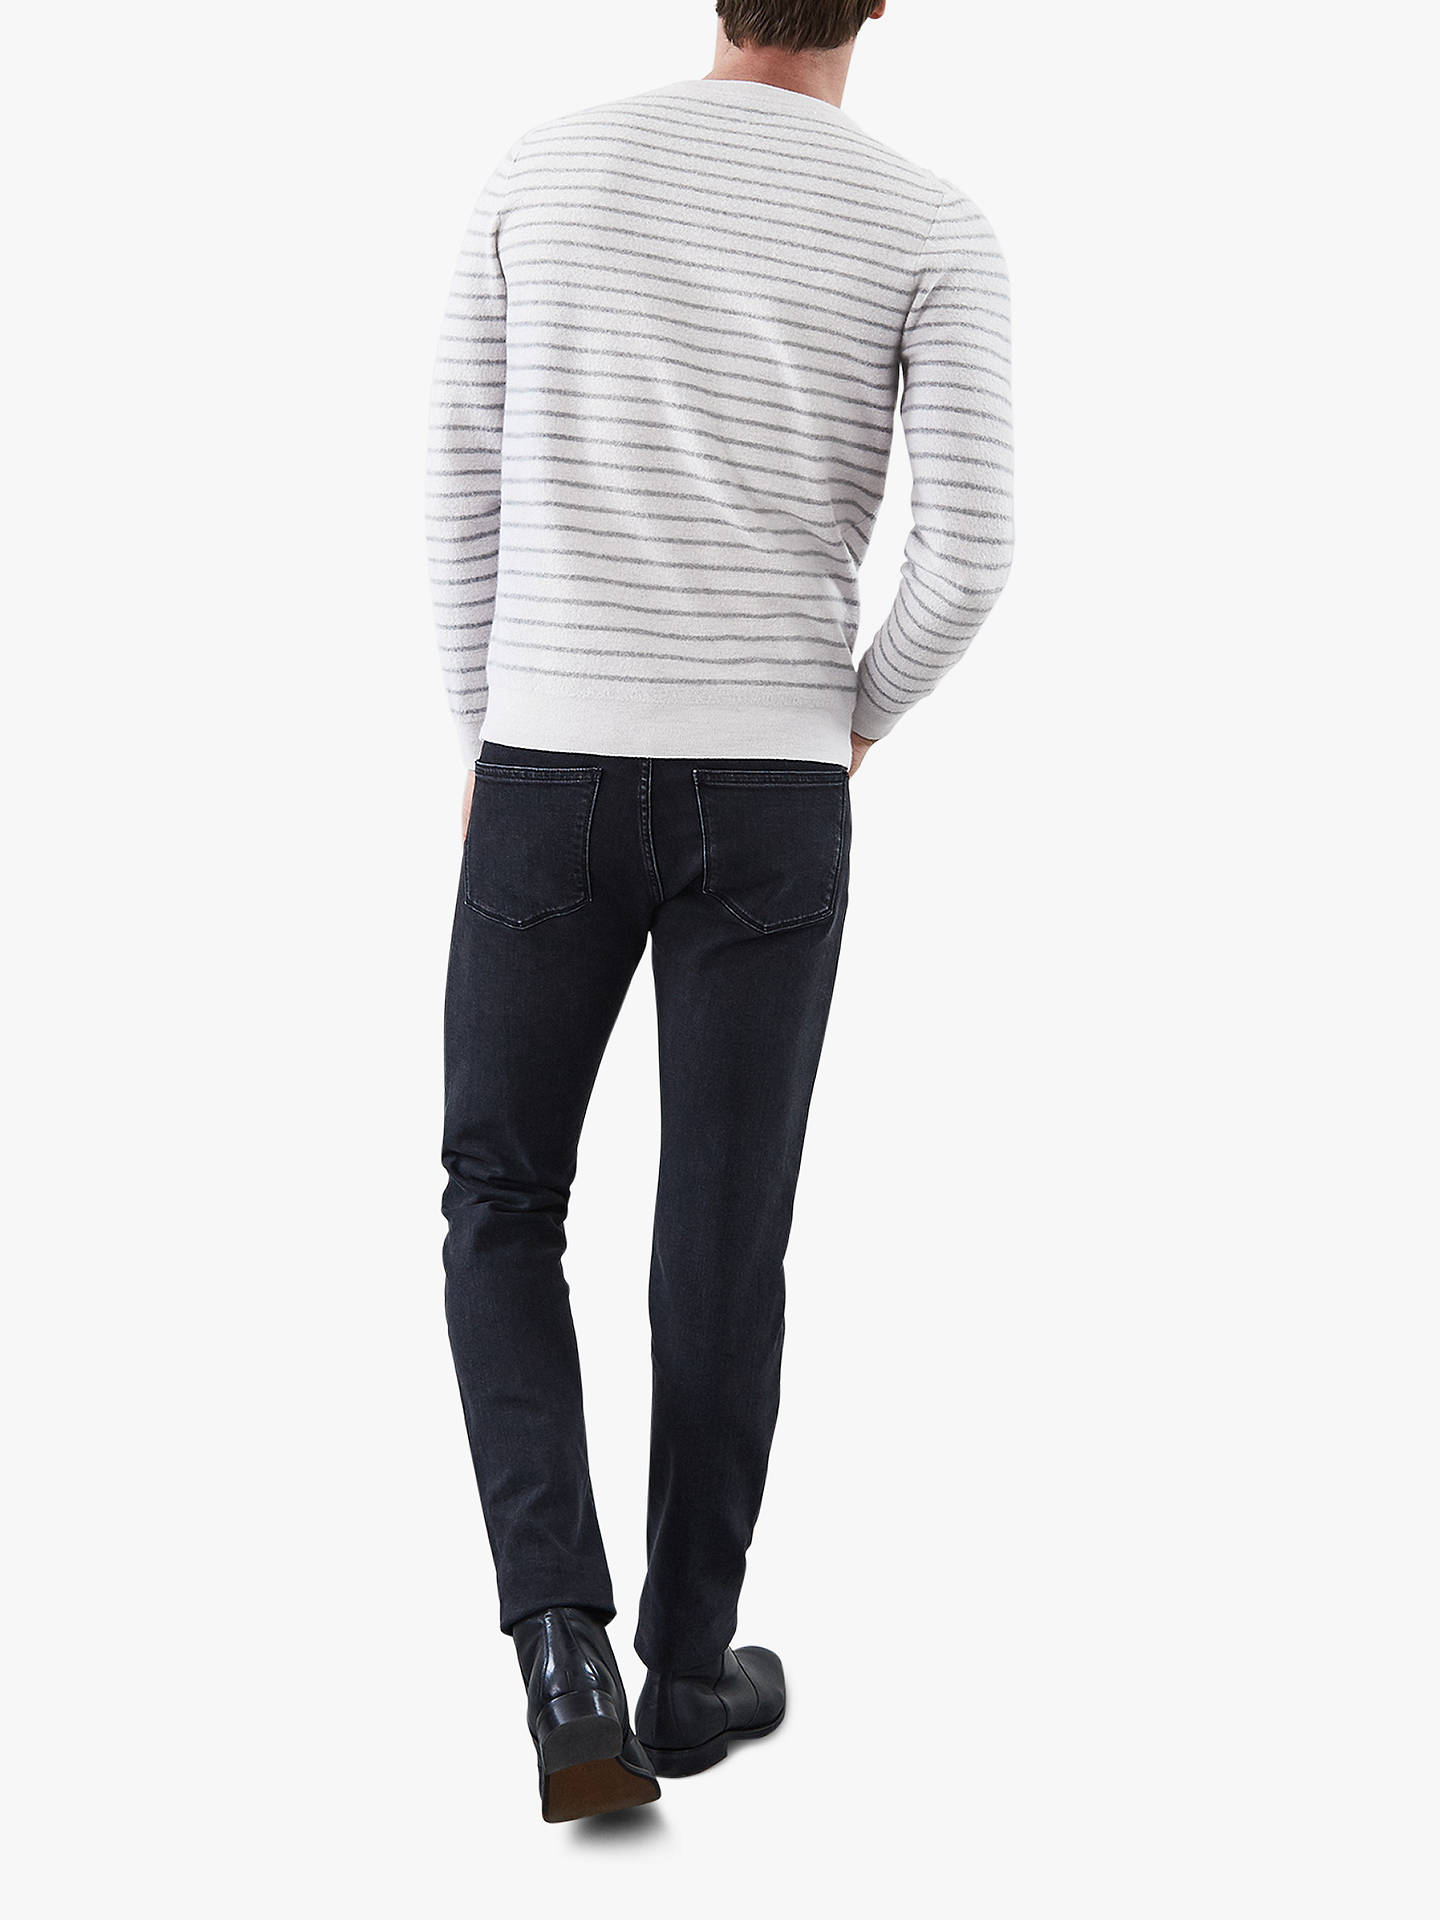 Buy Reiss Stevenson Wool Stripe Jumper, Soft Grey, S Online at johnlewis.com